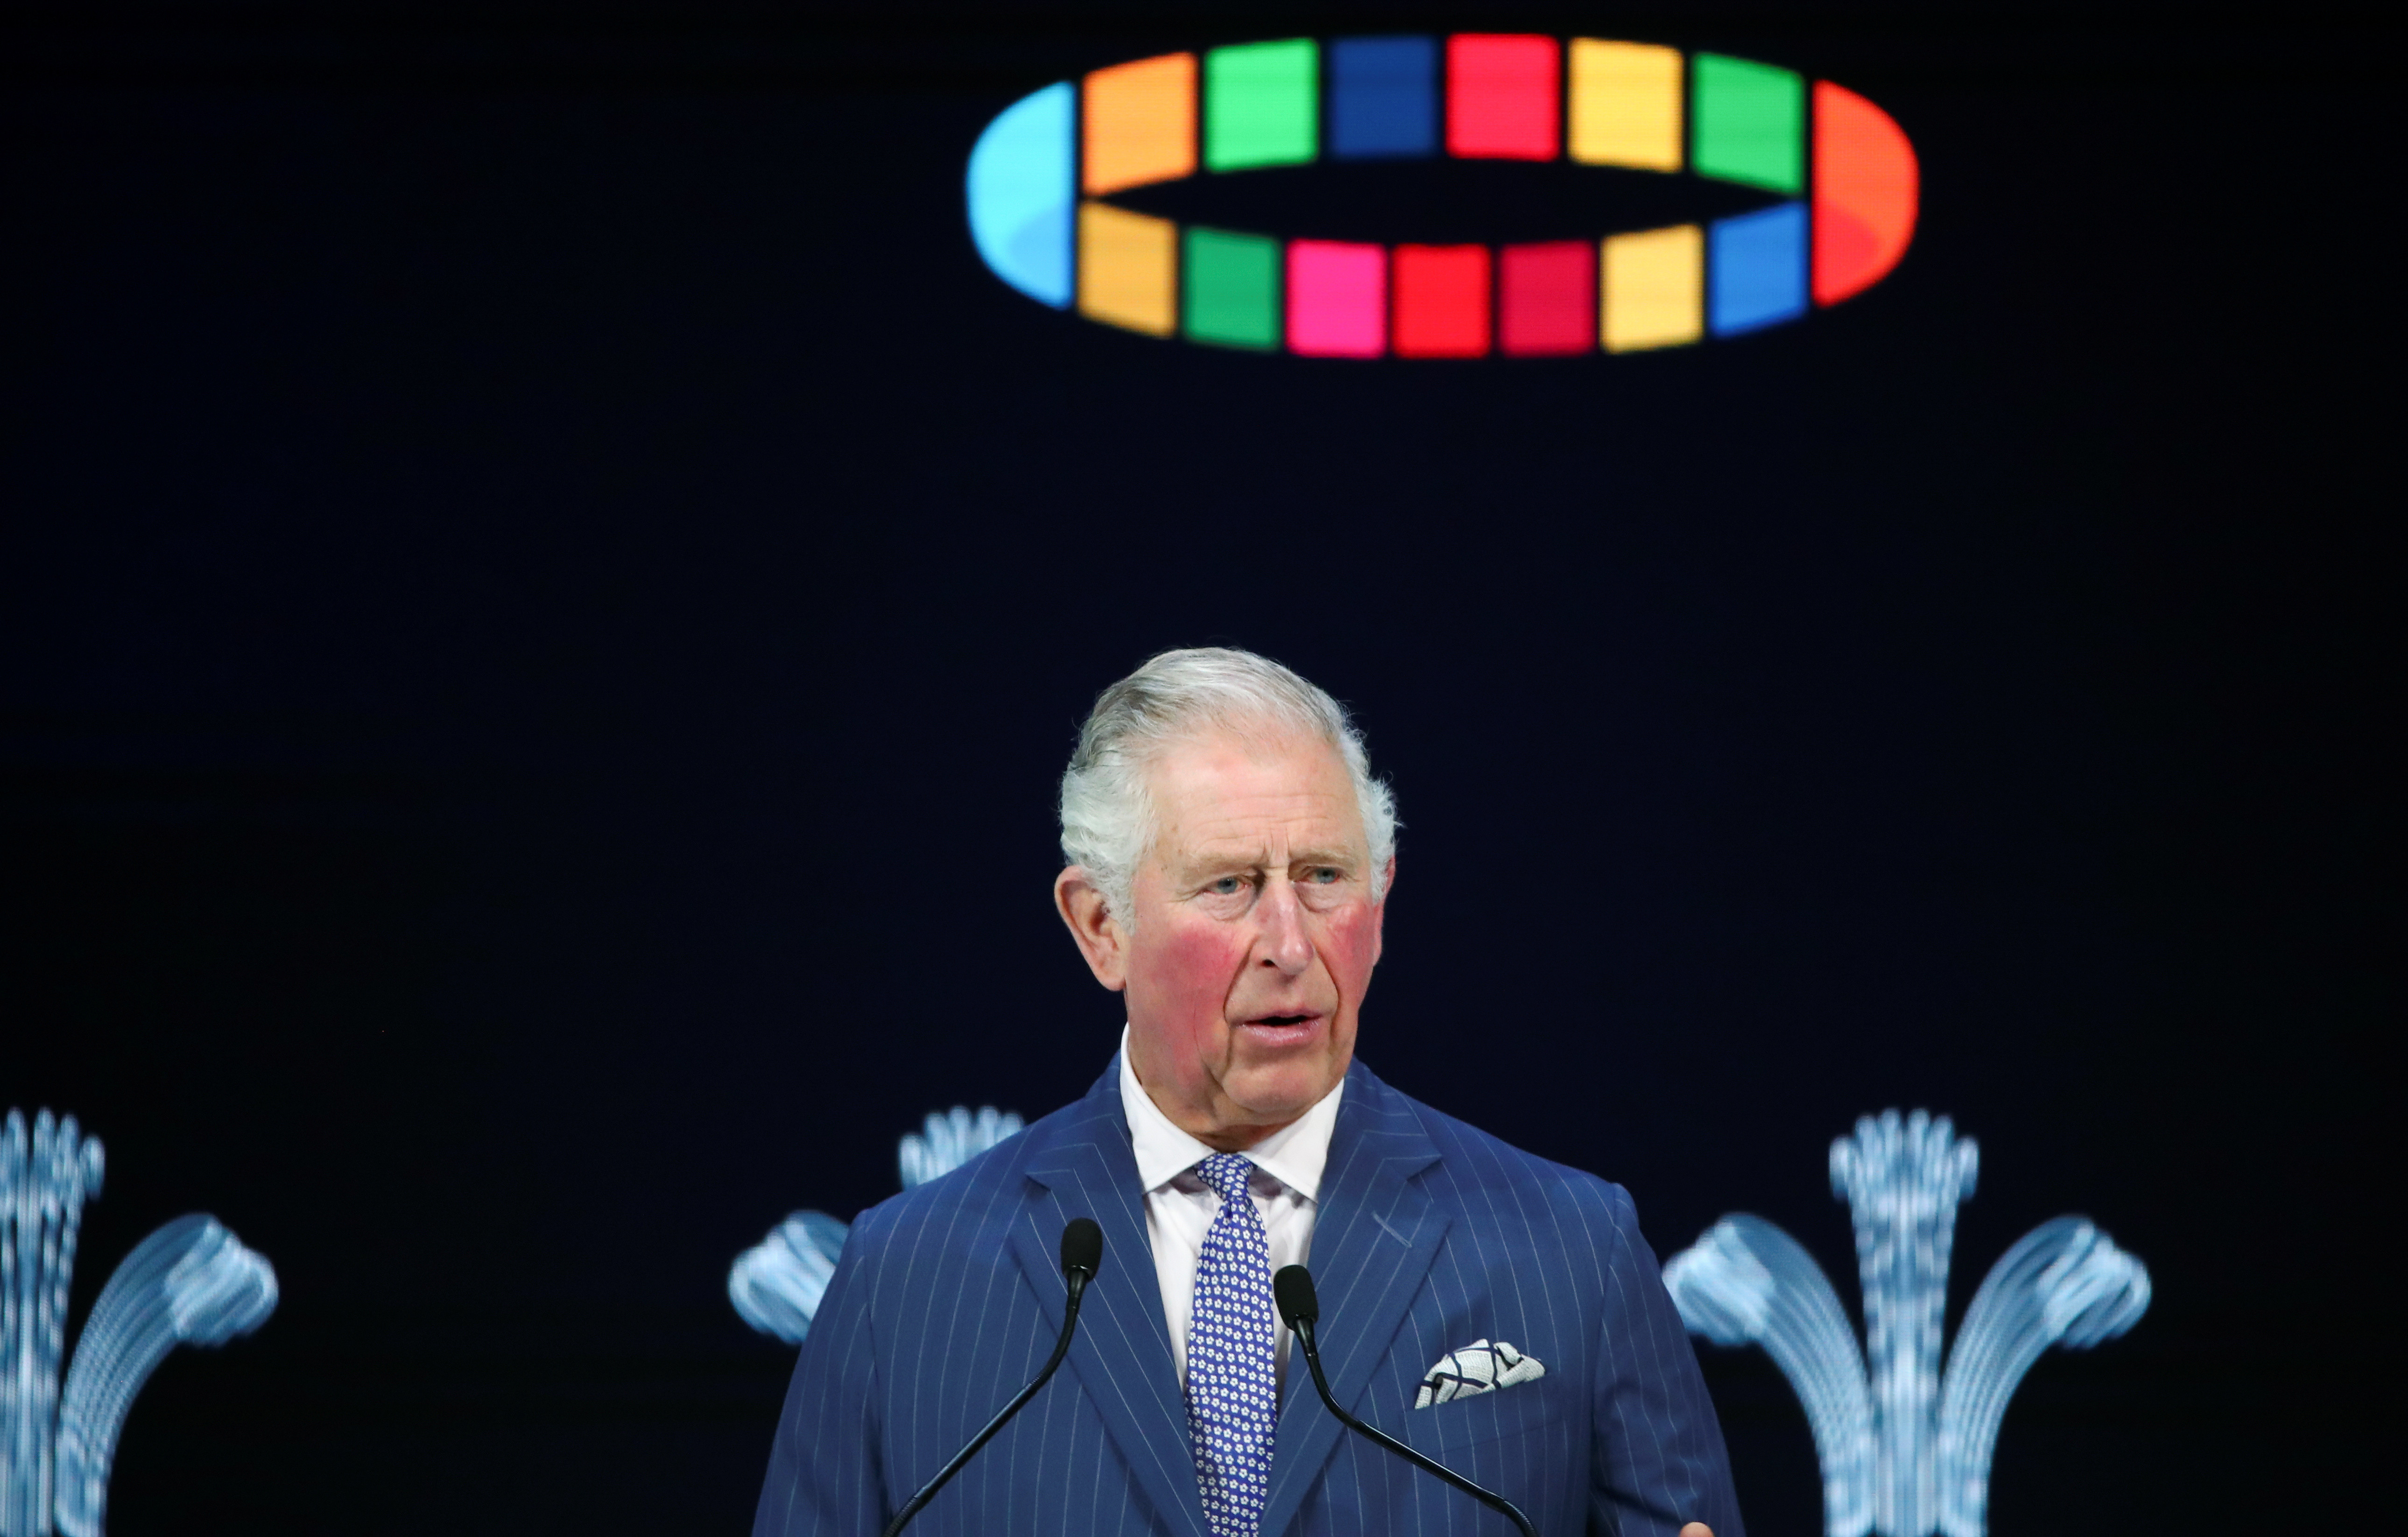 Britain's Prince Charles delivers a special address during the 50th World Economic Forum (WEF) annual meeting in Davos, Switzerland, January 22, 2020. REUTERS/Denis Balibouse - RC22LE92QCCK